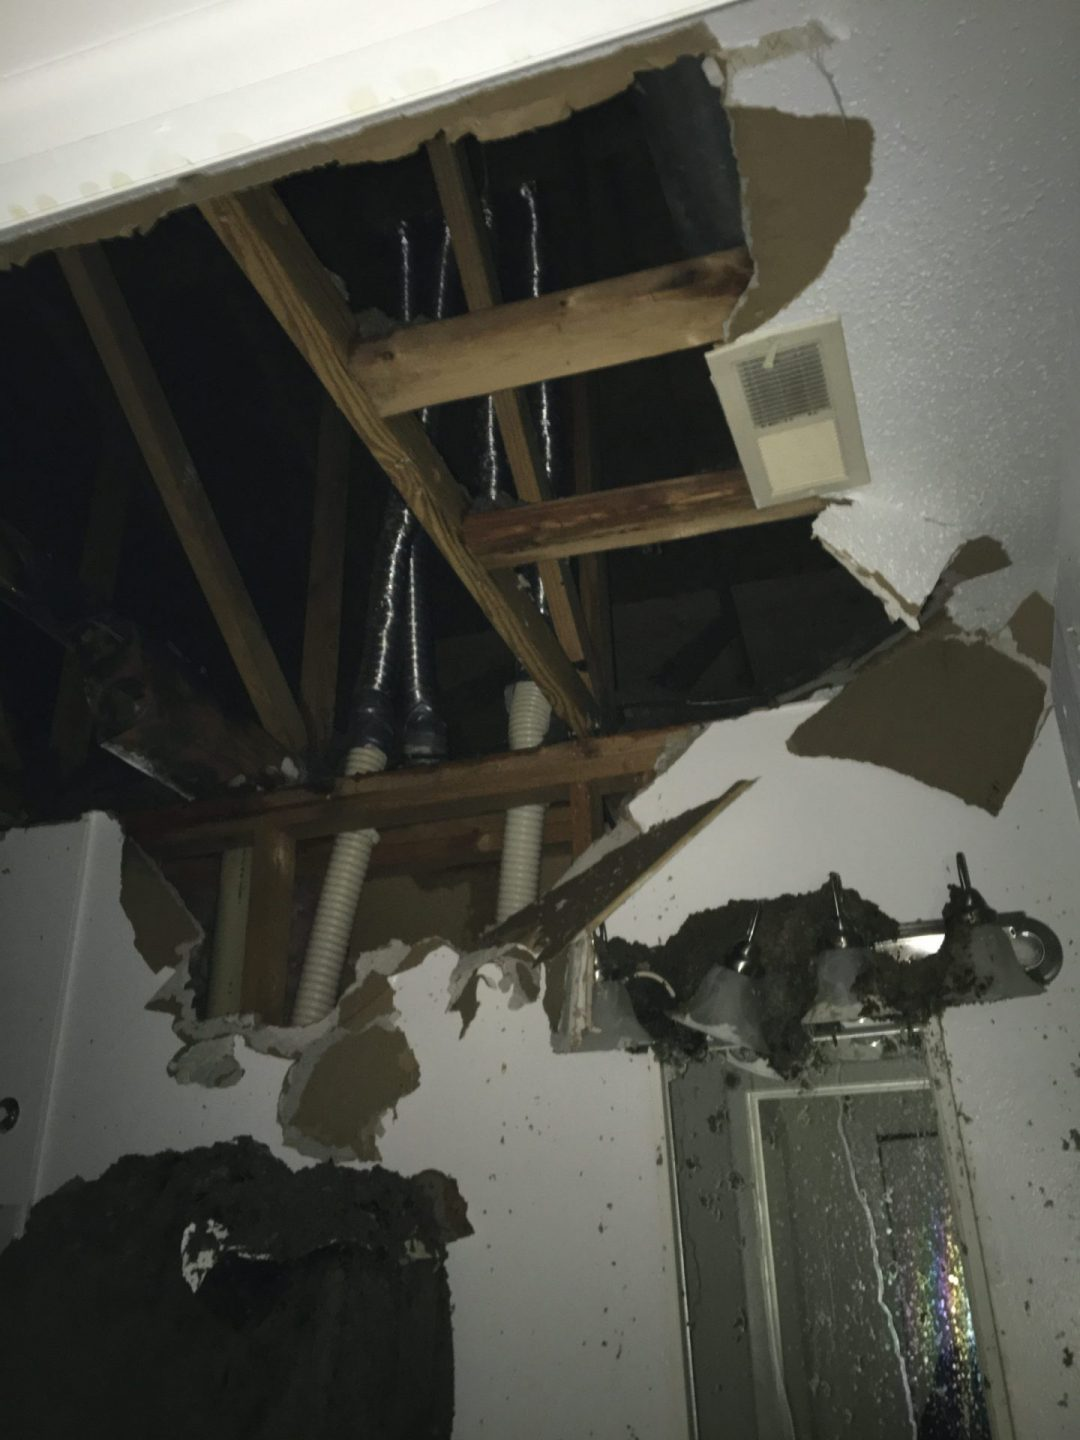 a picture of a hole in a ceiling at a commercial water damage project